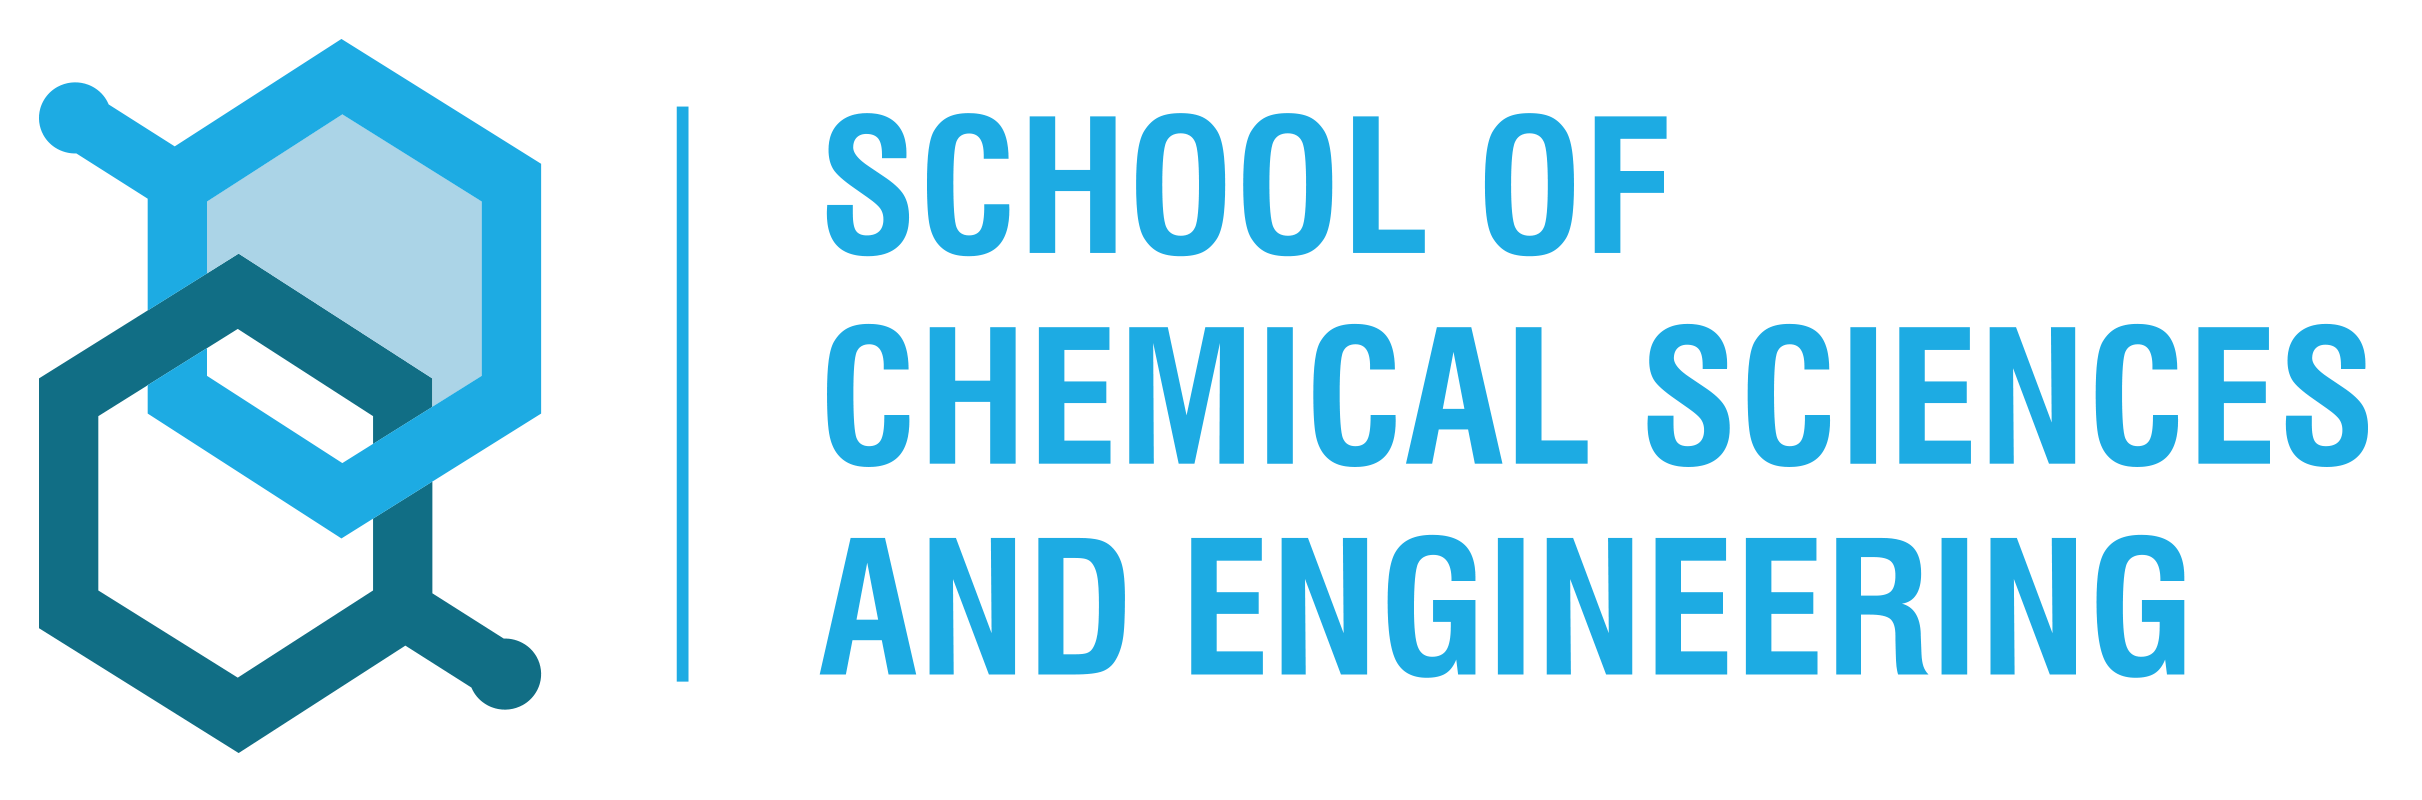 Chemical Sciences and Engineering